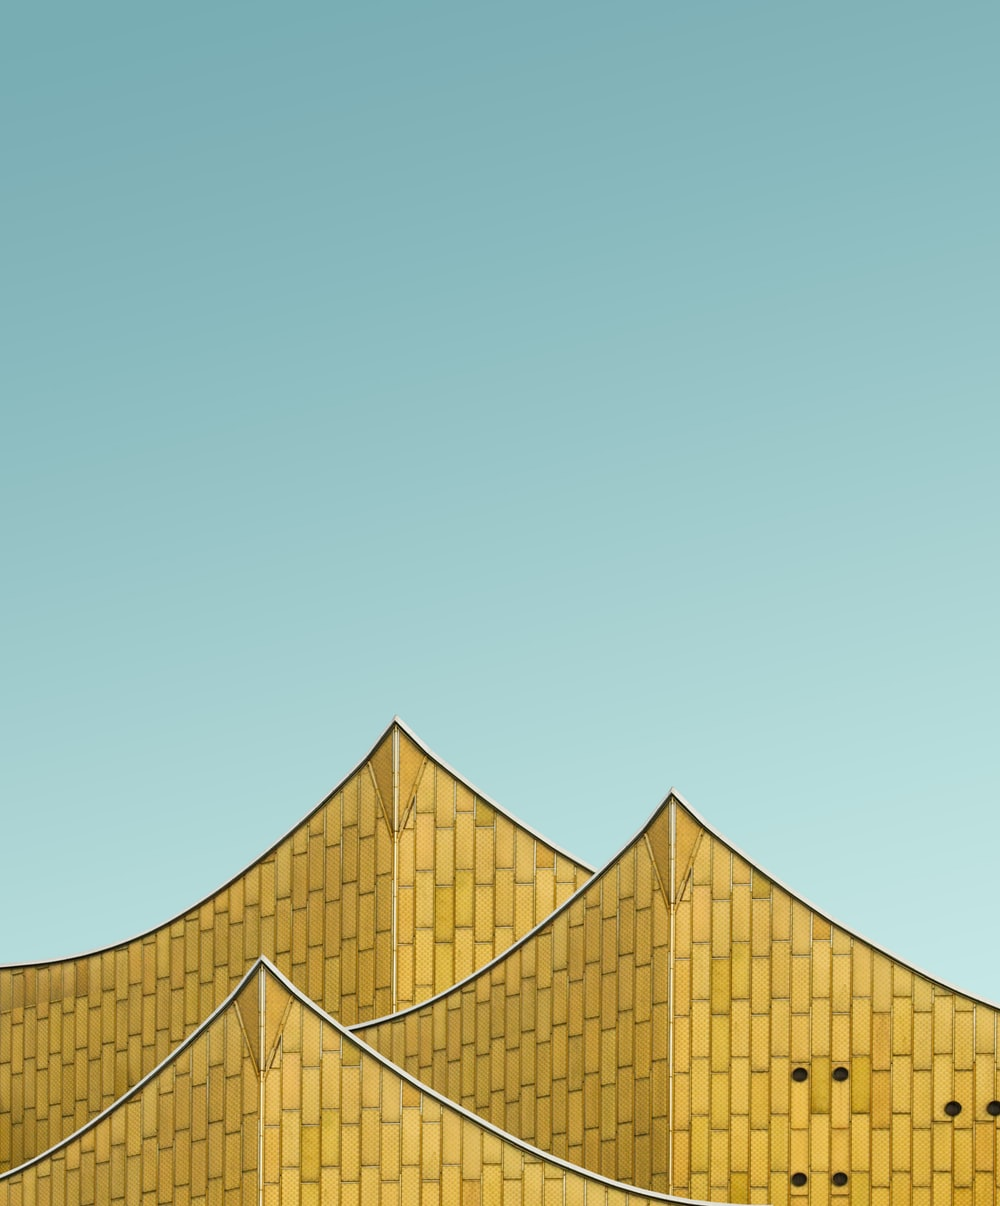 architectural photography of building roofing